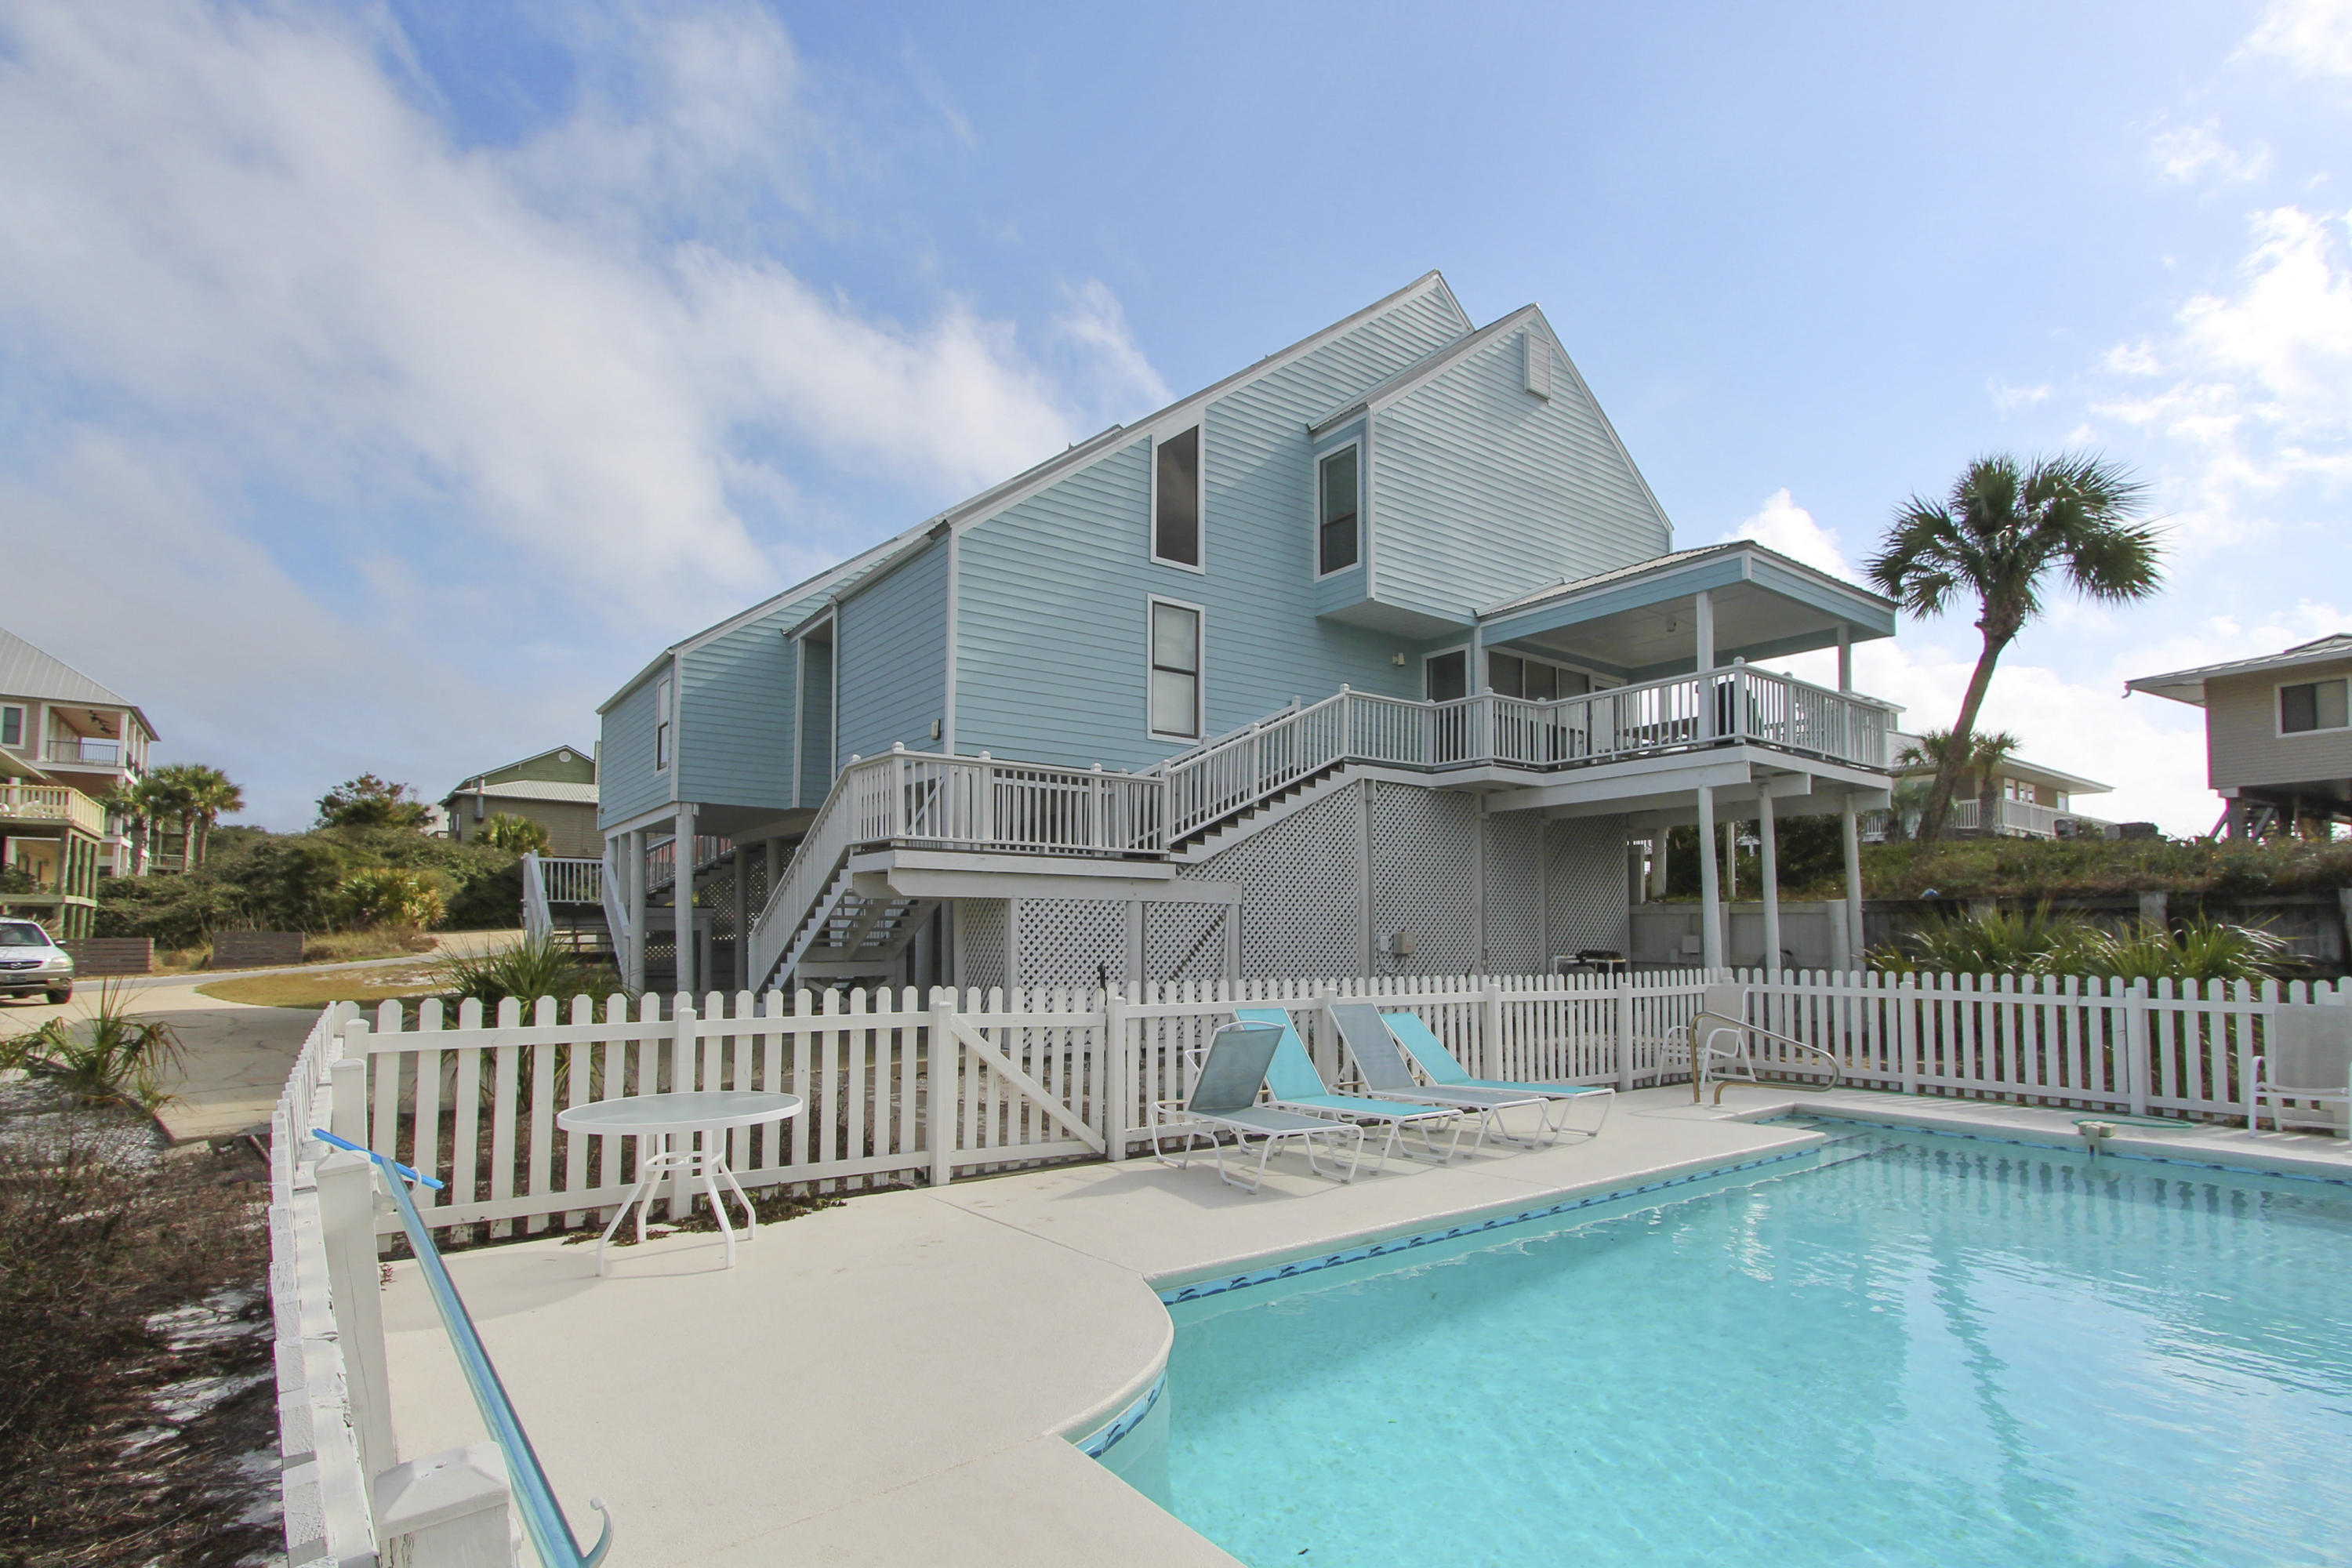 A 6 Bedroom 4 Bedroom Gulf Trace Townhome